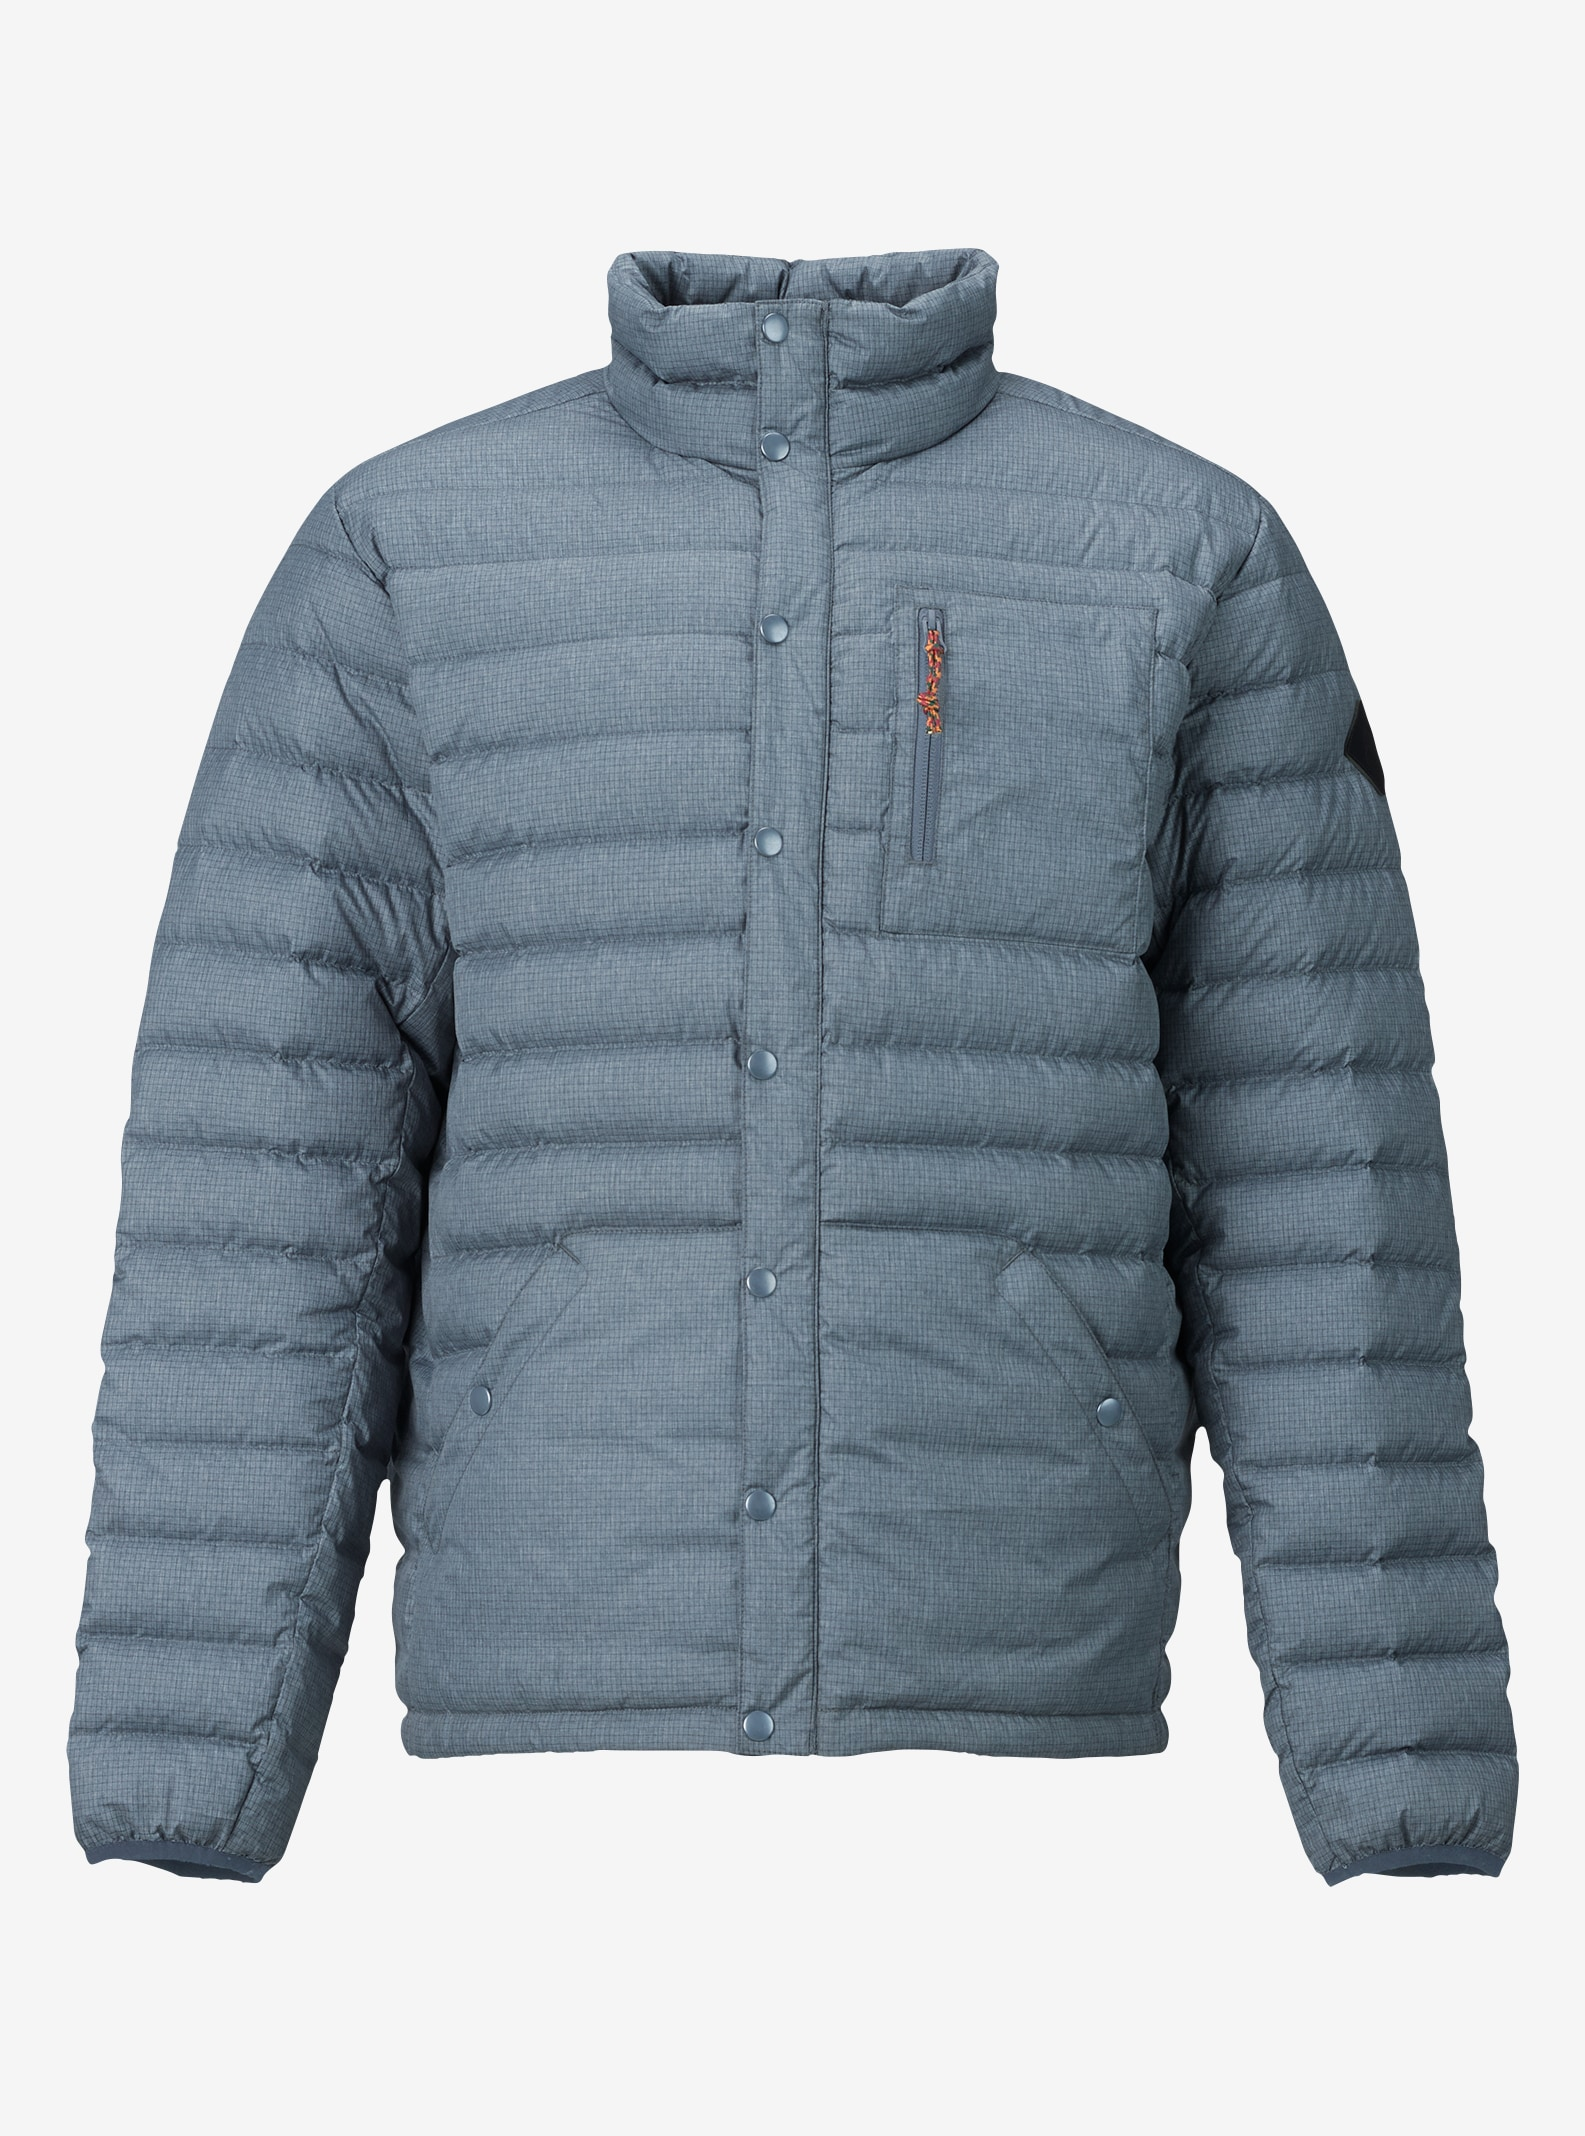 Men's Burton Evergreen Down Insulator shown in LA Sky Heather